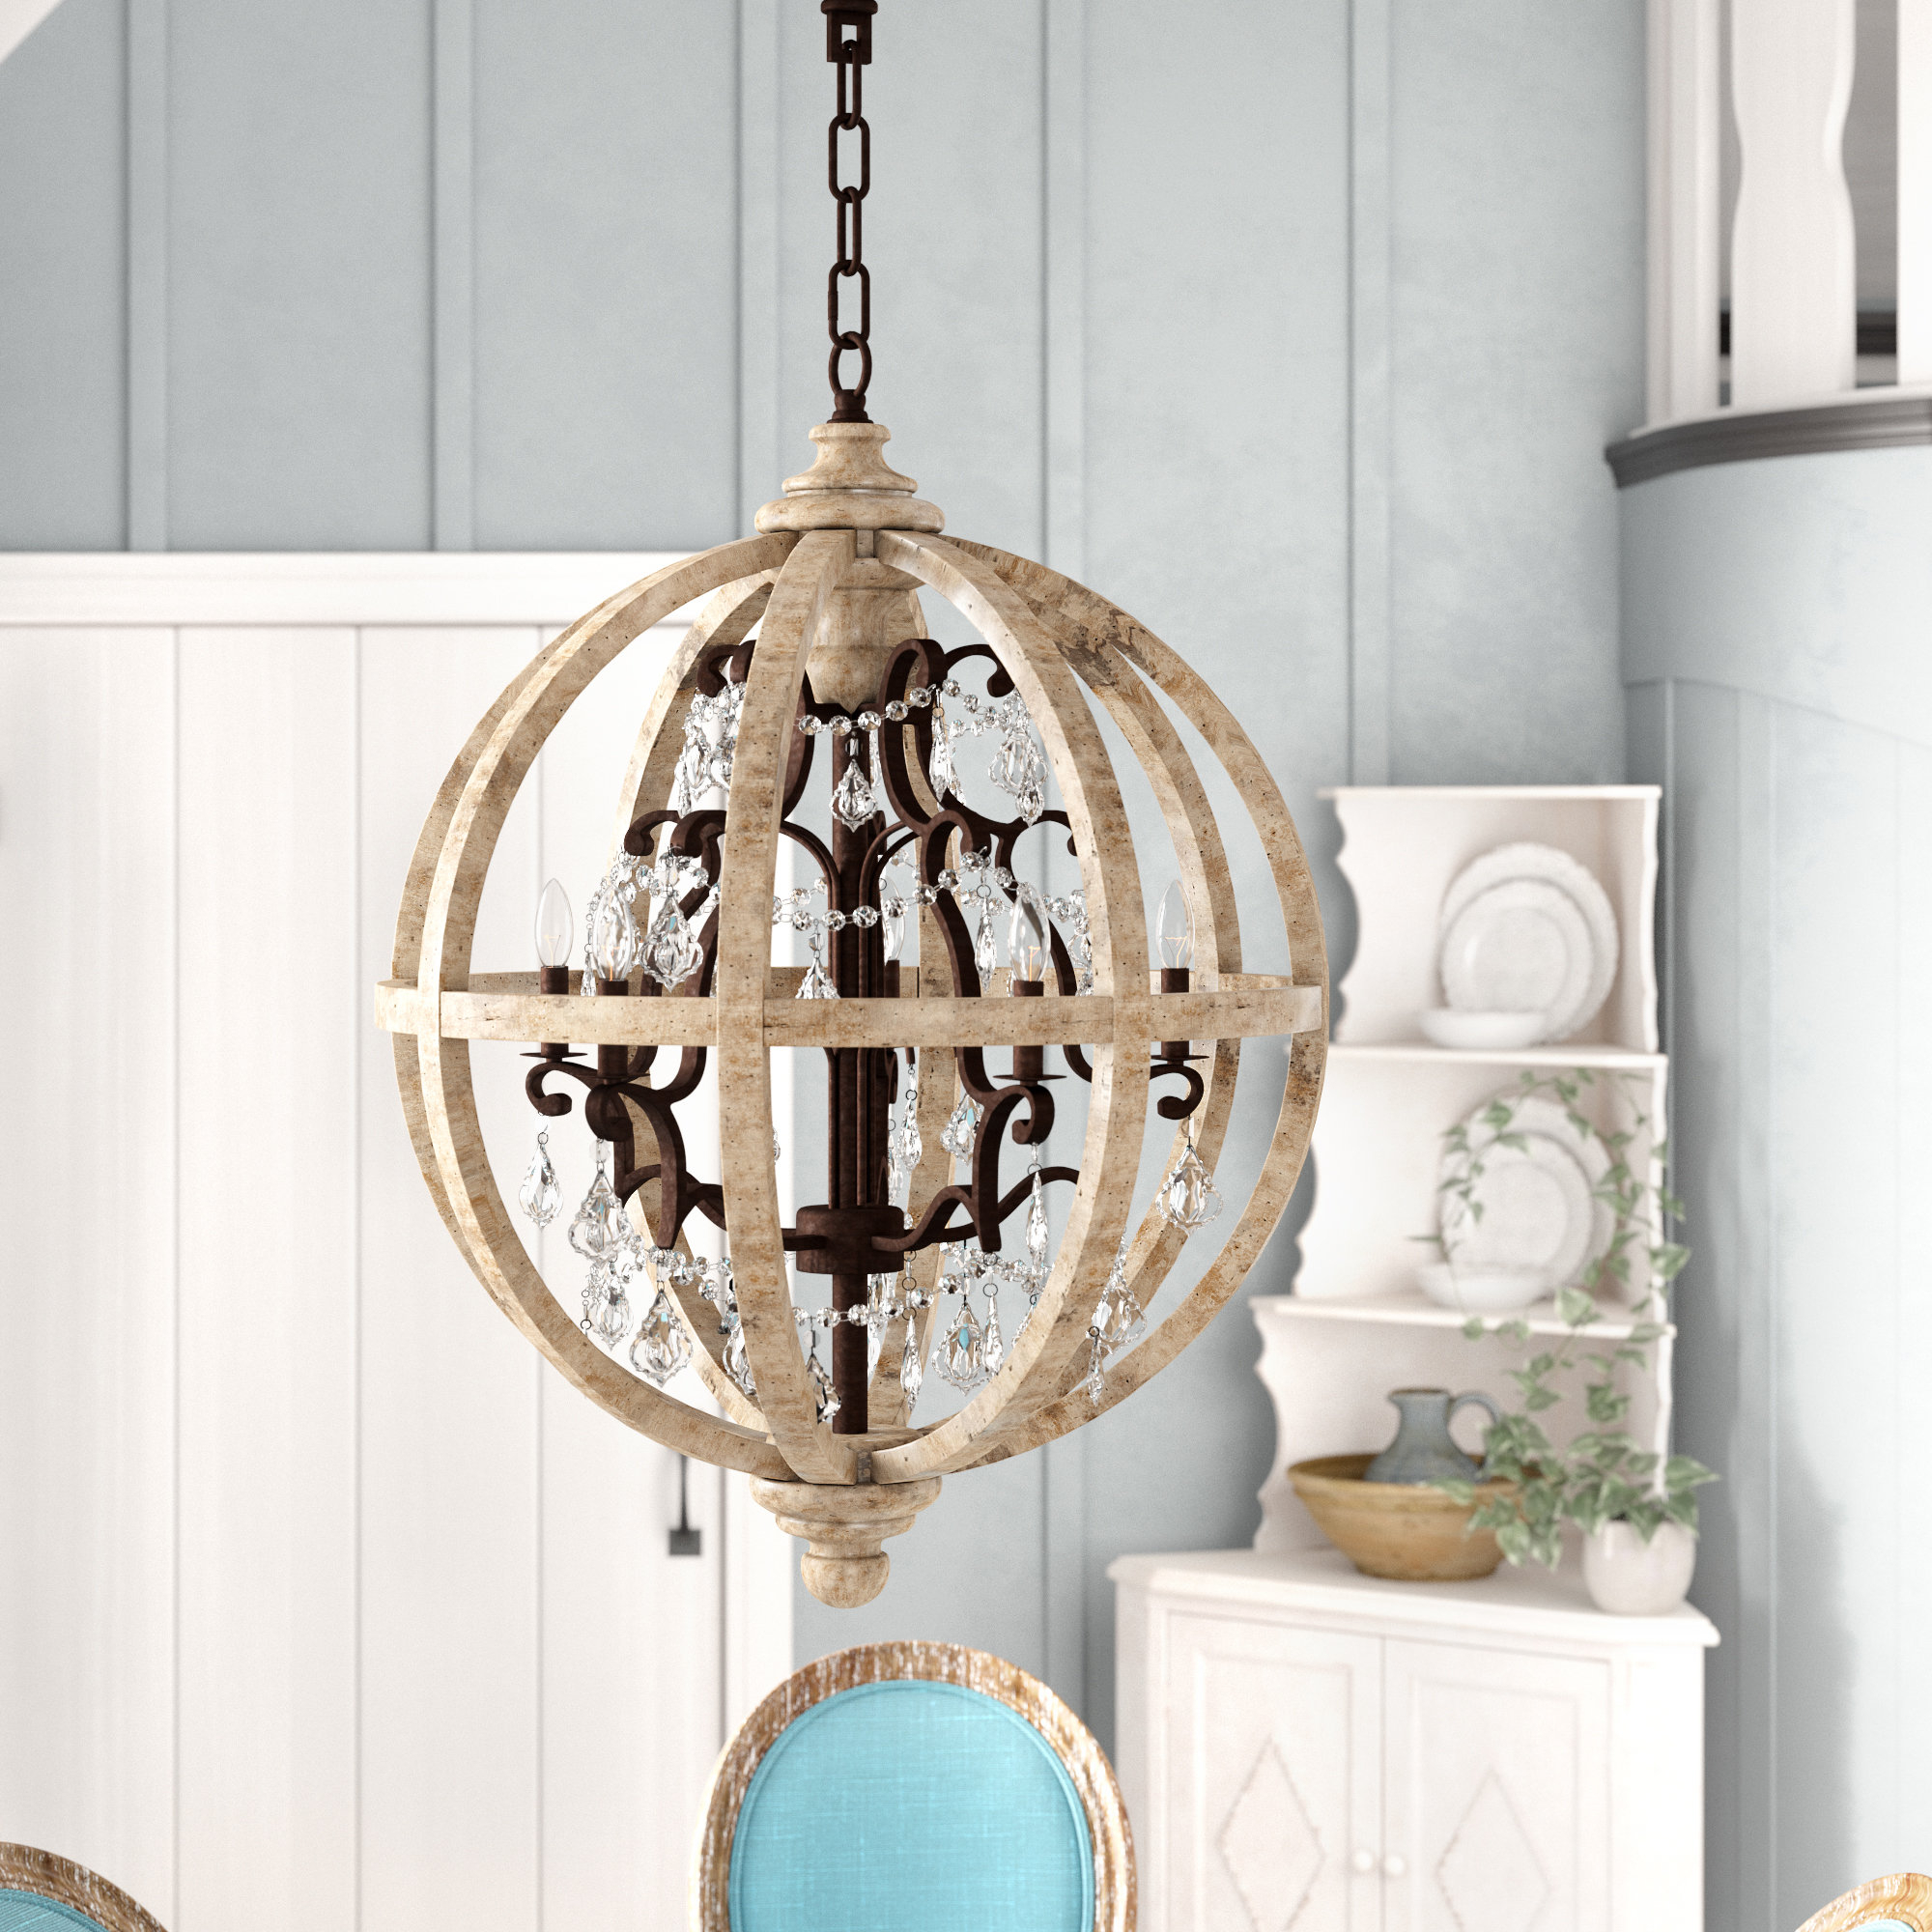 Andreana 5 Light Globe Chandelier Pertaining To Latest Filipe Globe Chandeliers (View 2 of 20)